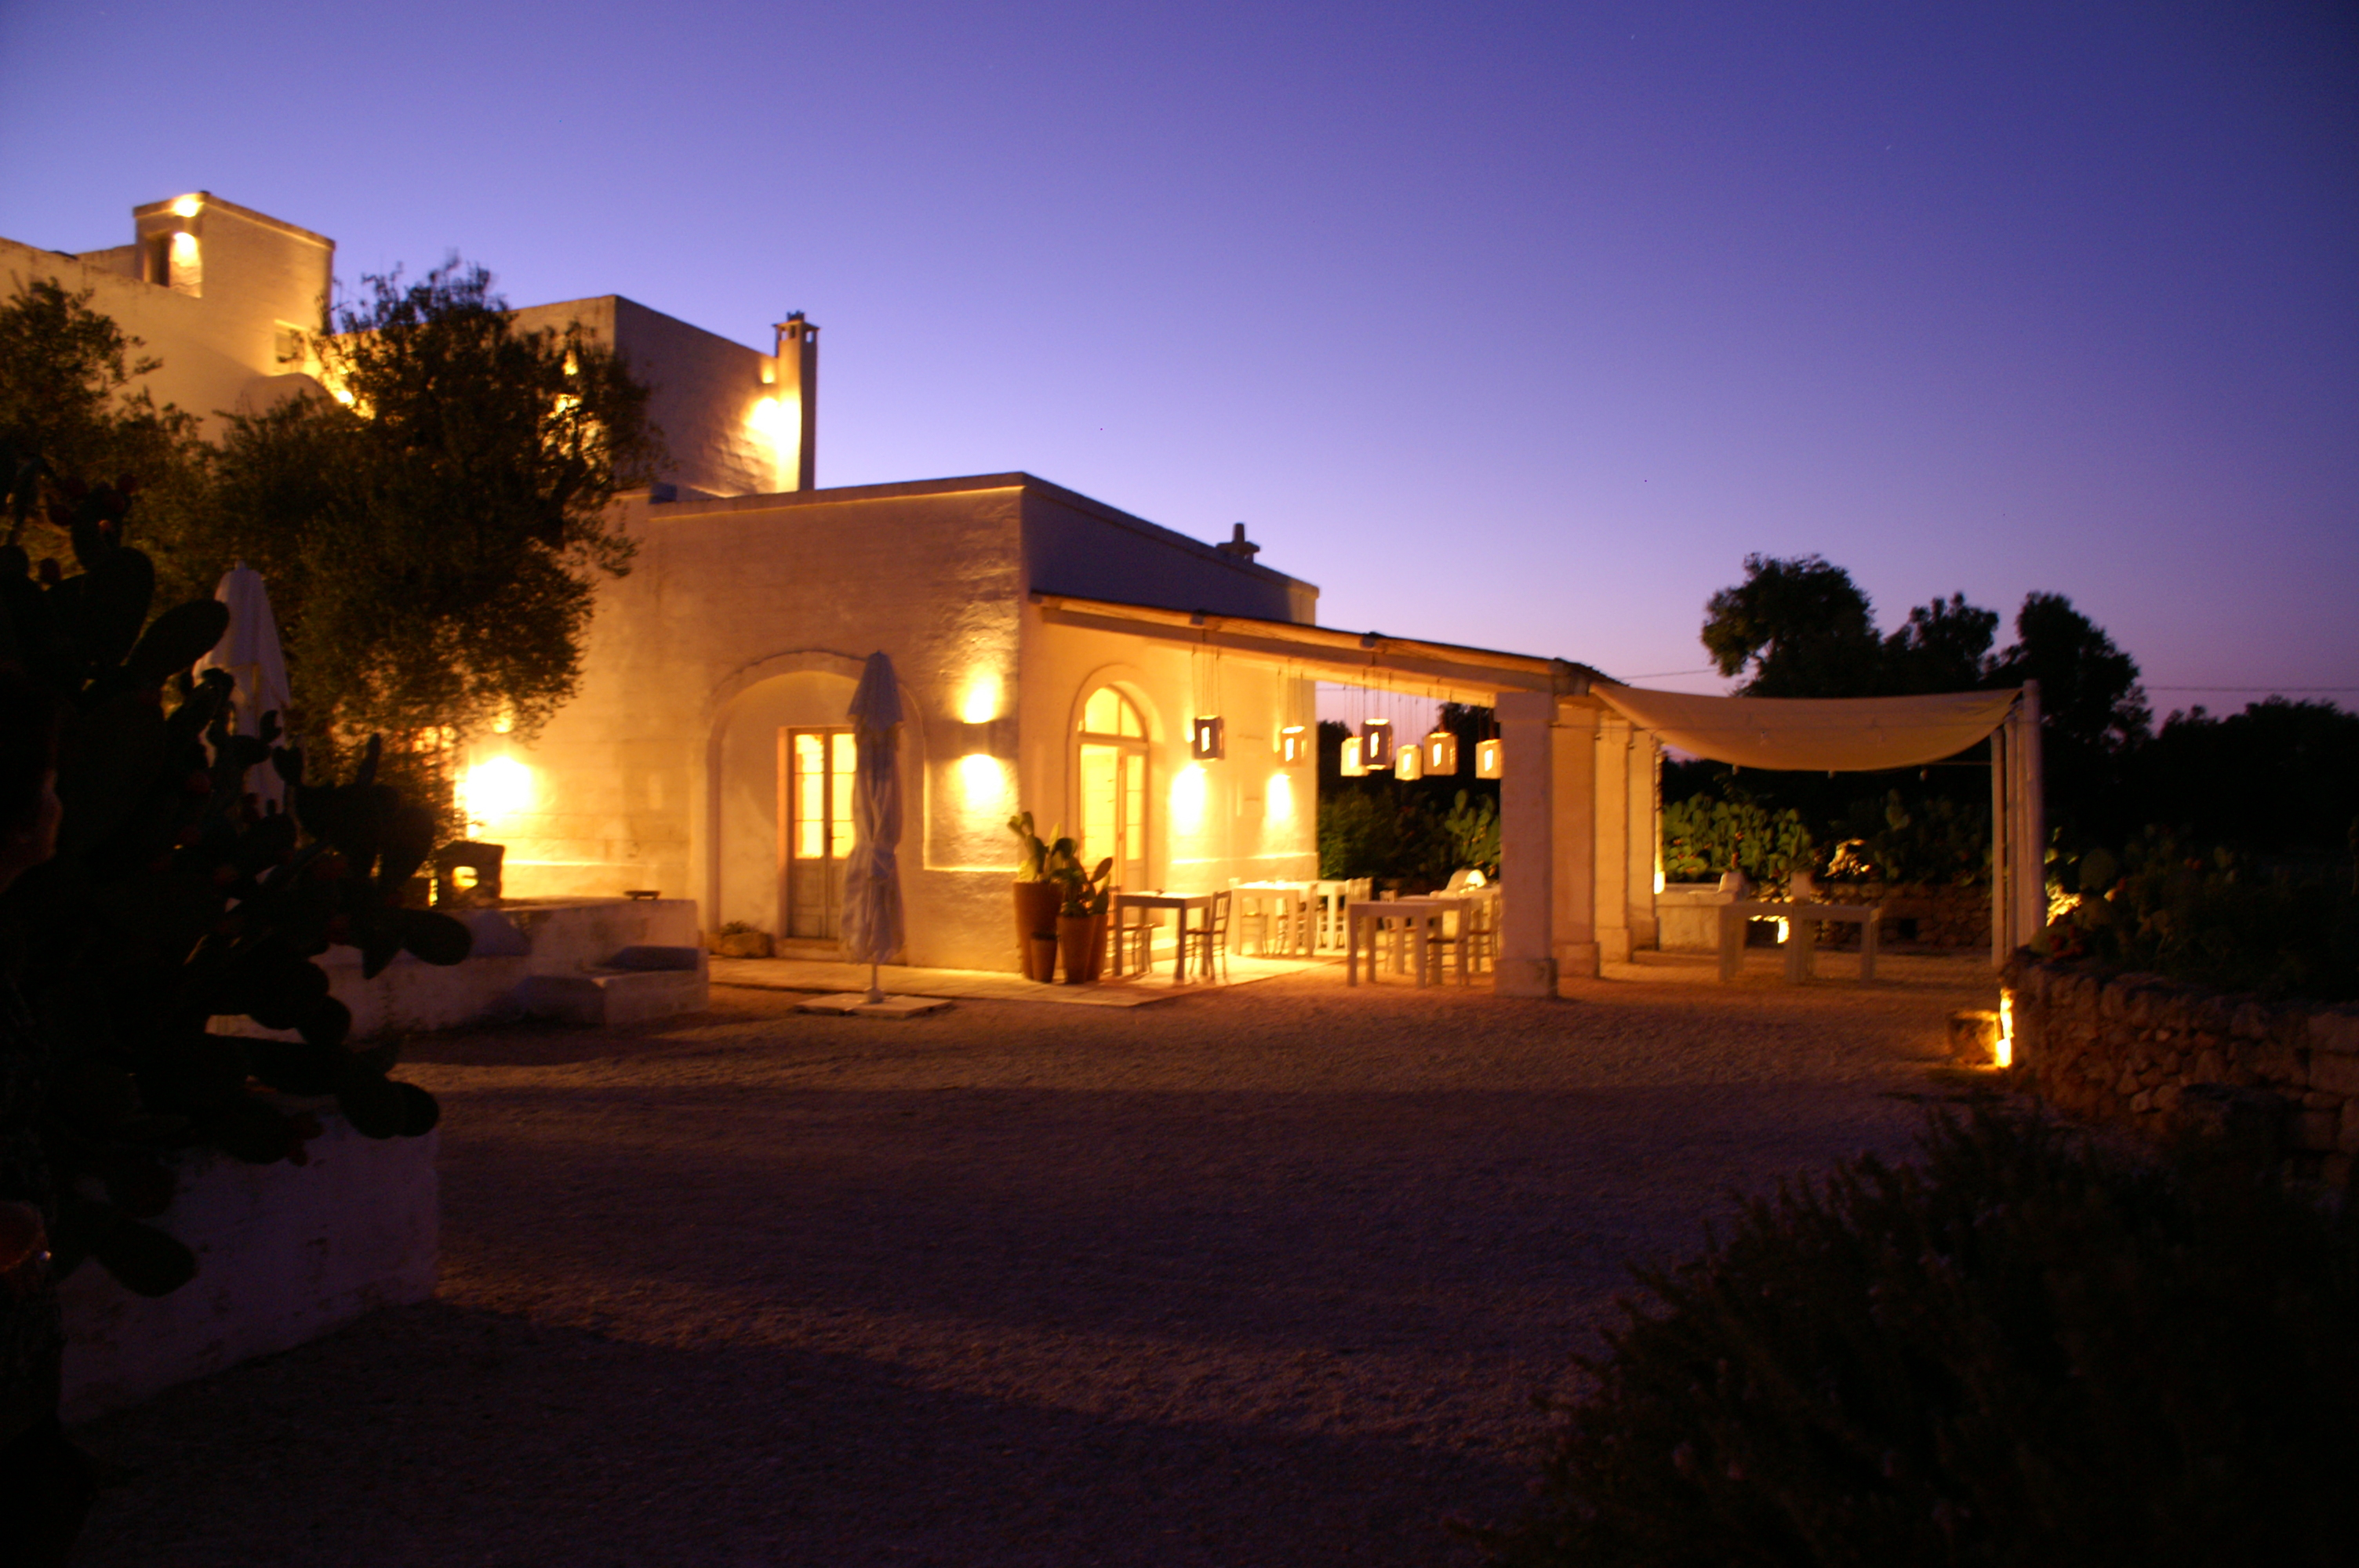 File Illuminated Outdoor Restaurant Terrace At Masseria Cimino In Puglia Italy Panoramio Jpg Wikimedia Commons